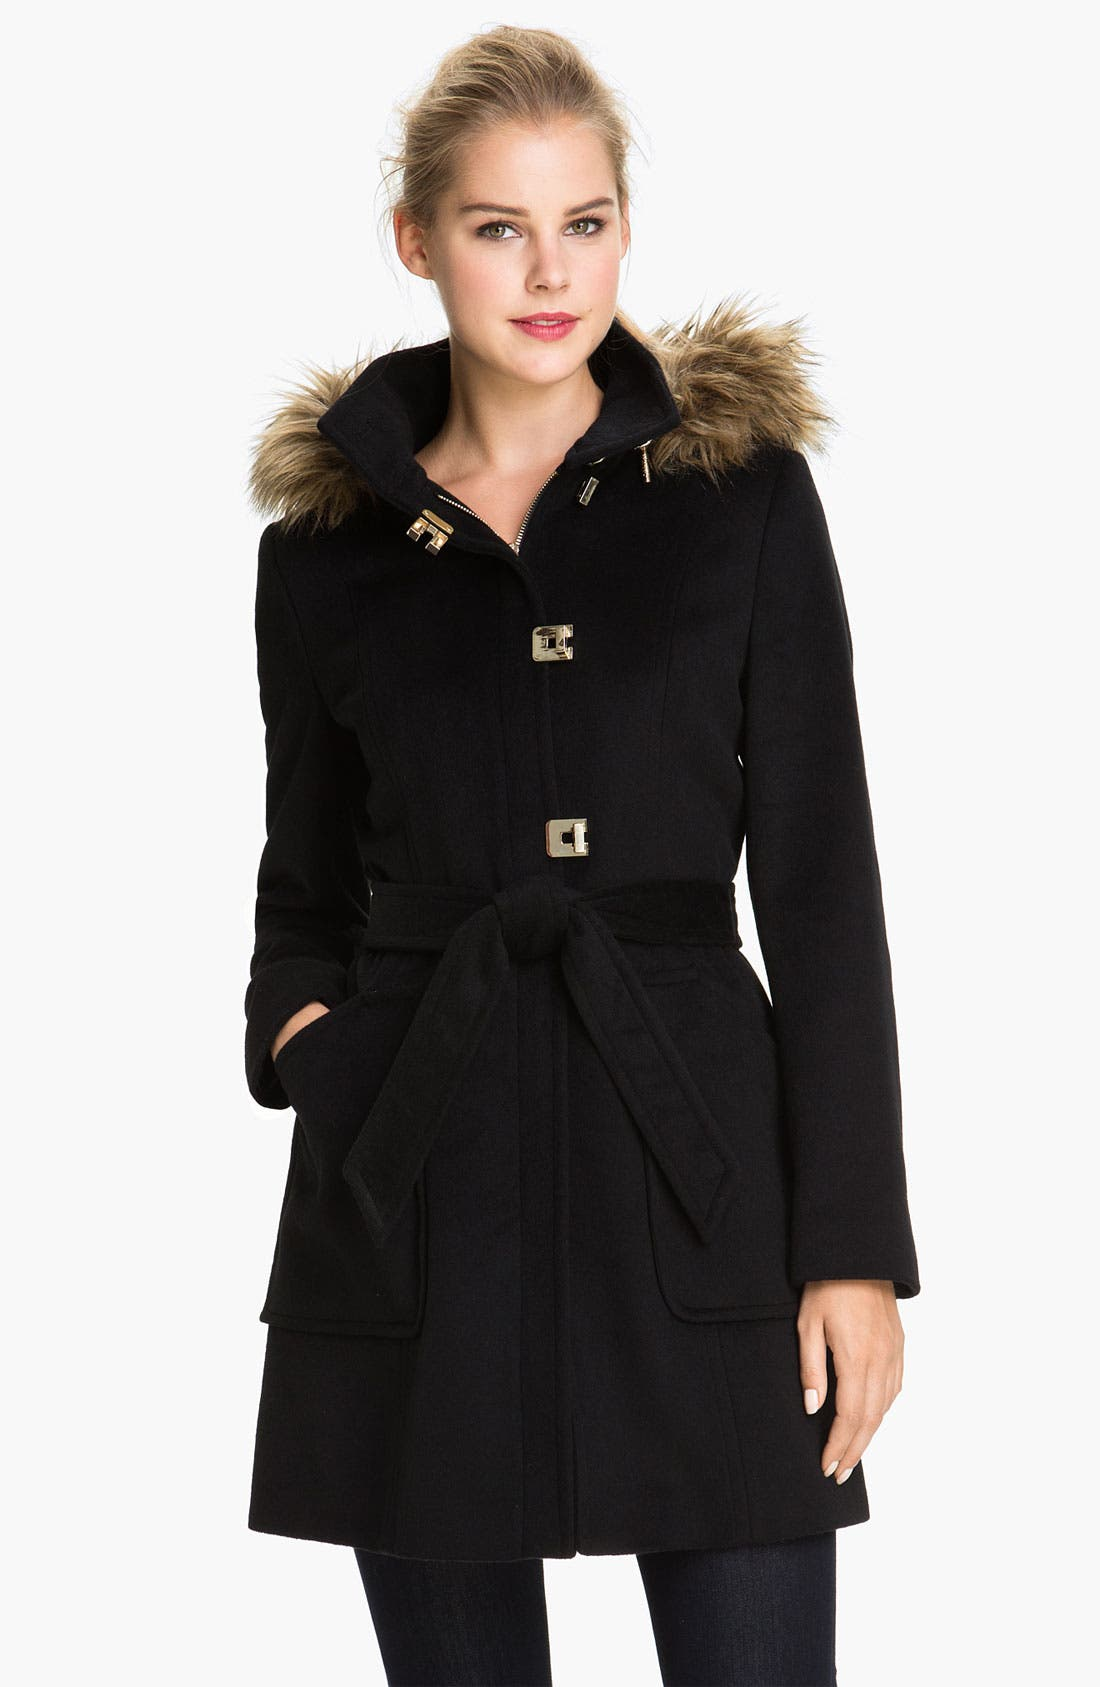 Alternate Image 1 Selected - Calvin Klein Faux Fur Trim Turnkey Coat (Online Exclusive)